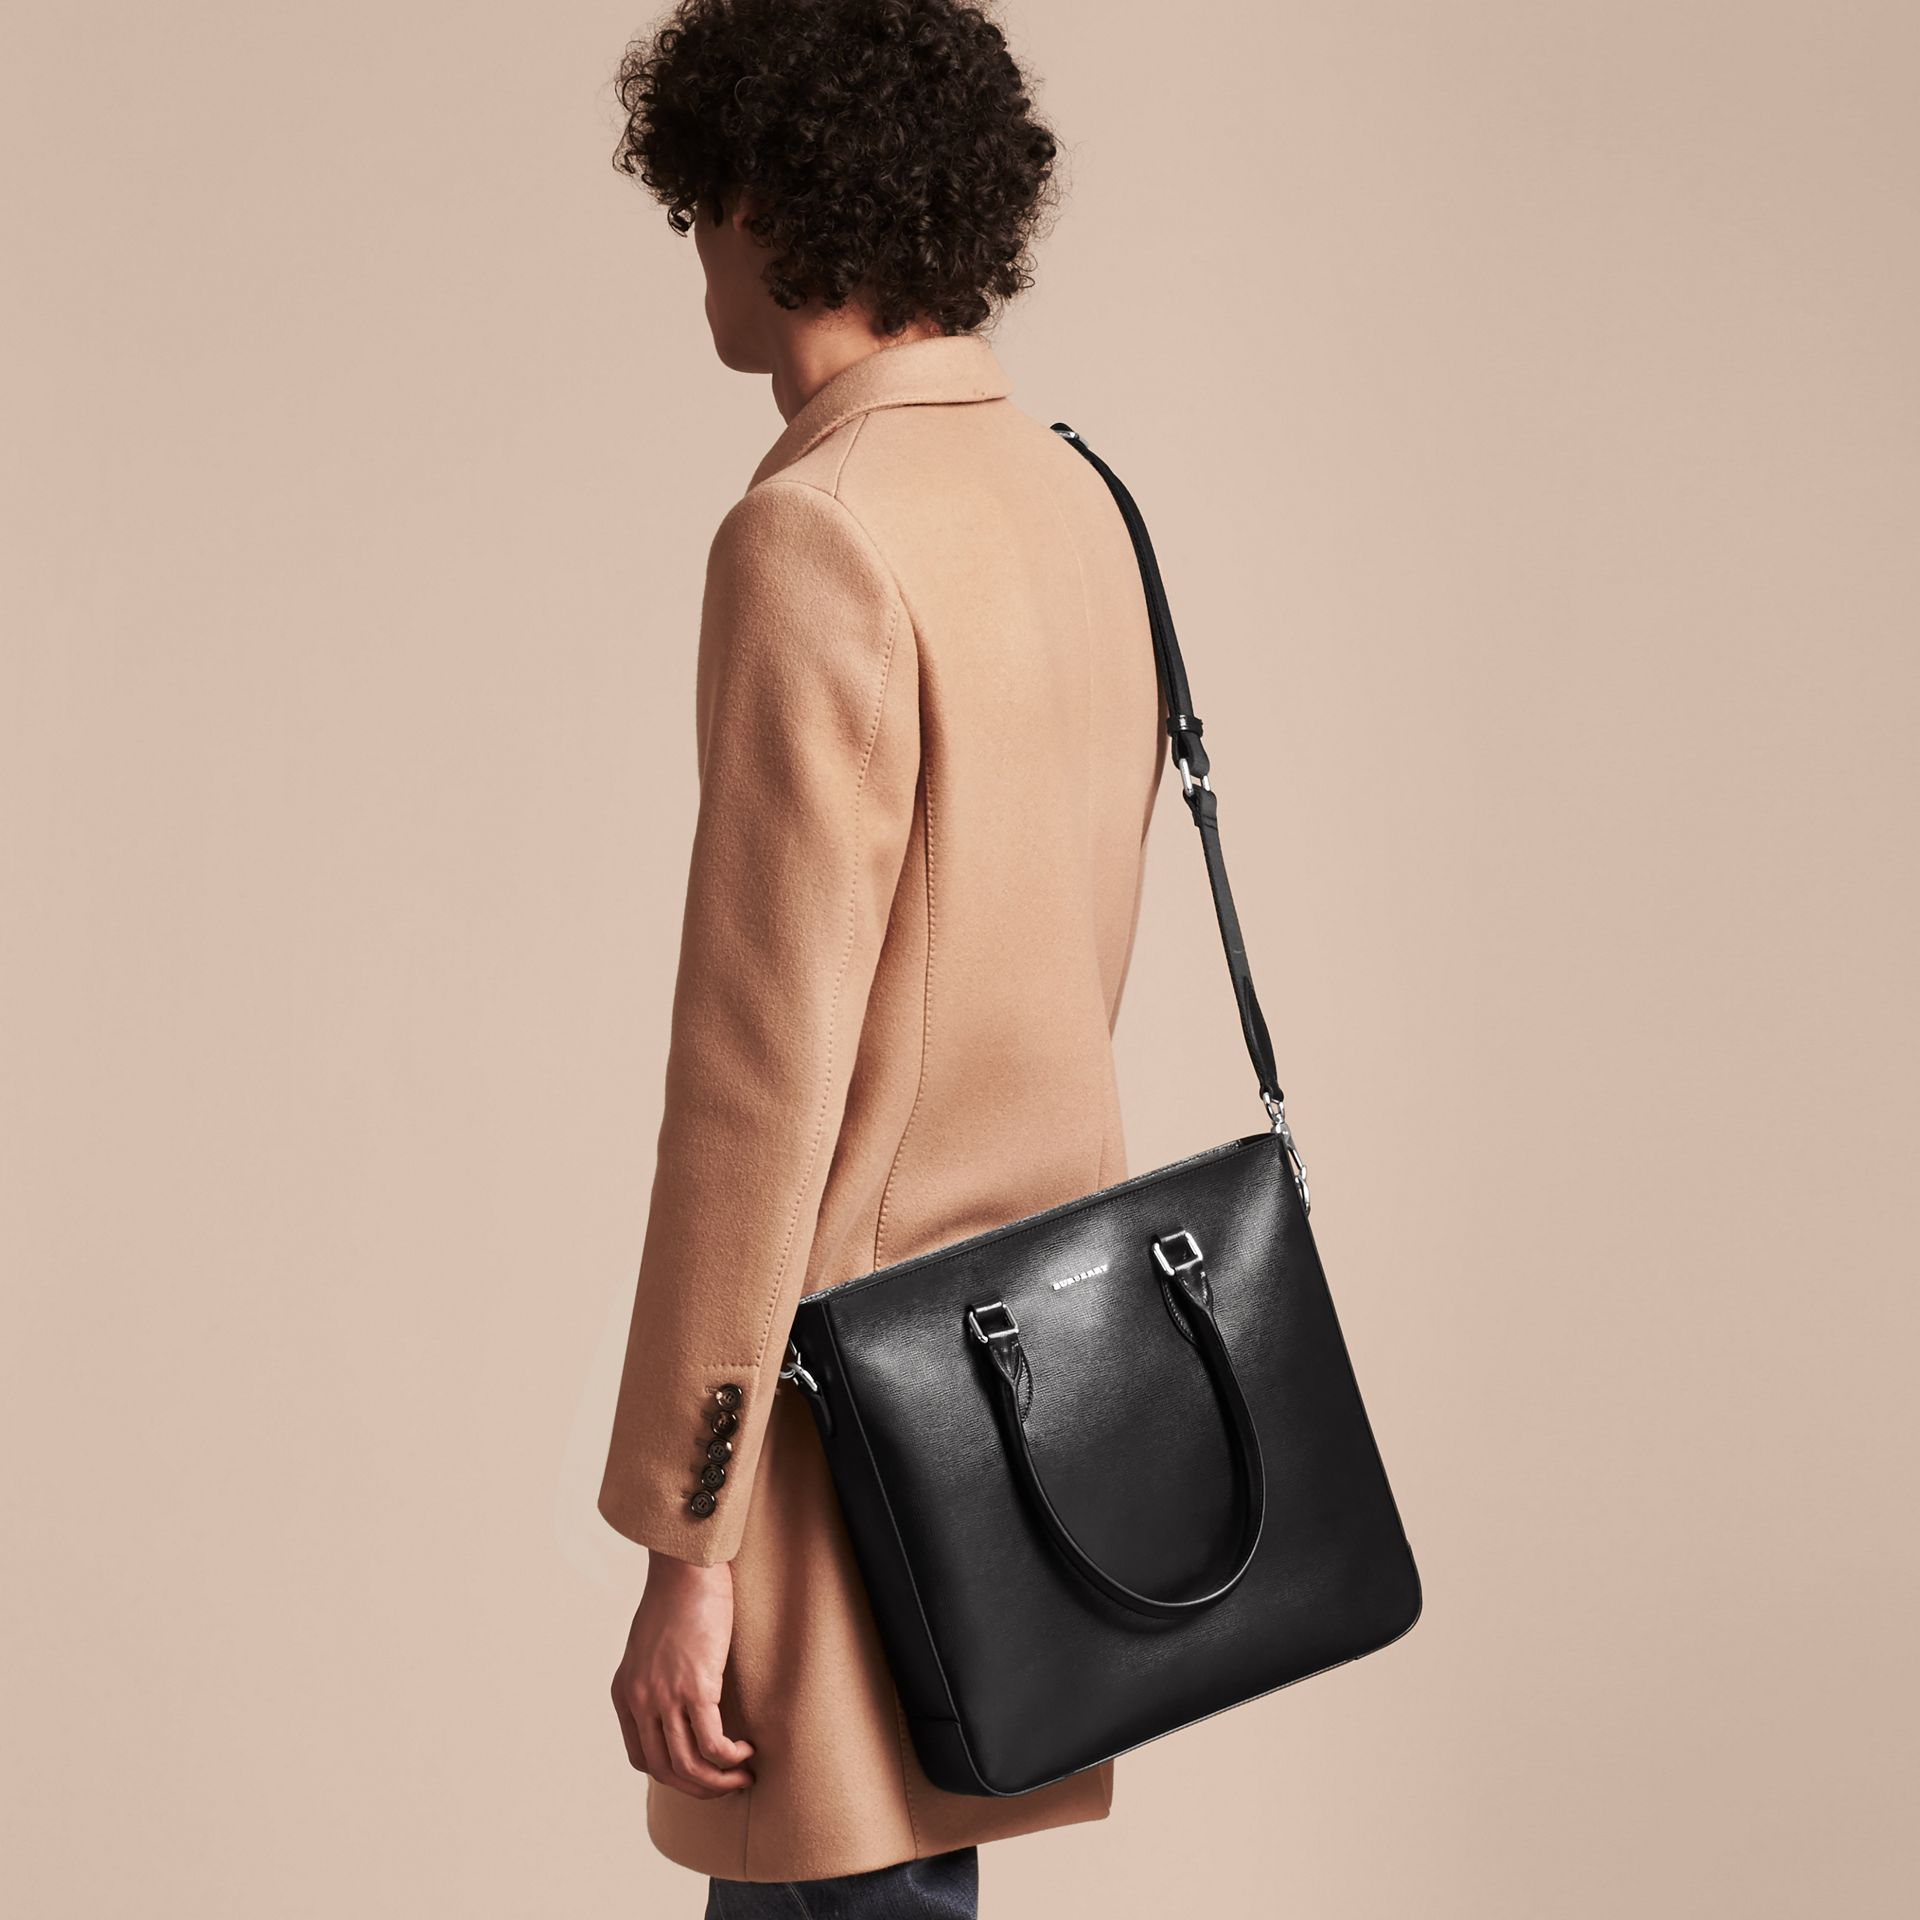 Black London Leather Tote Bag Black - gallery image 4